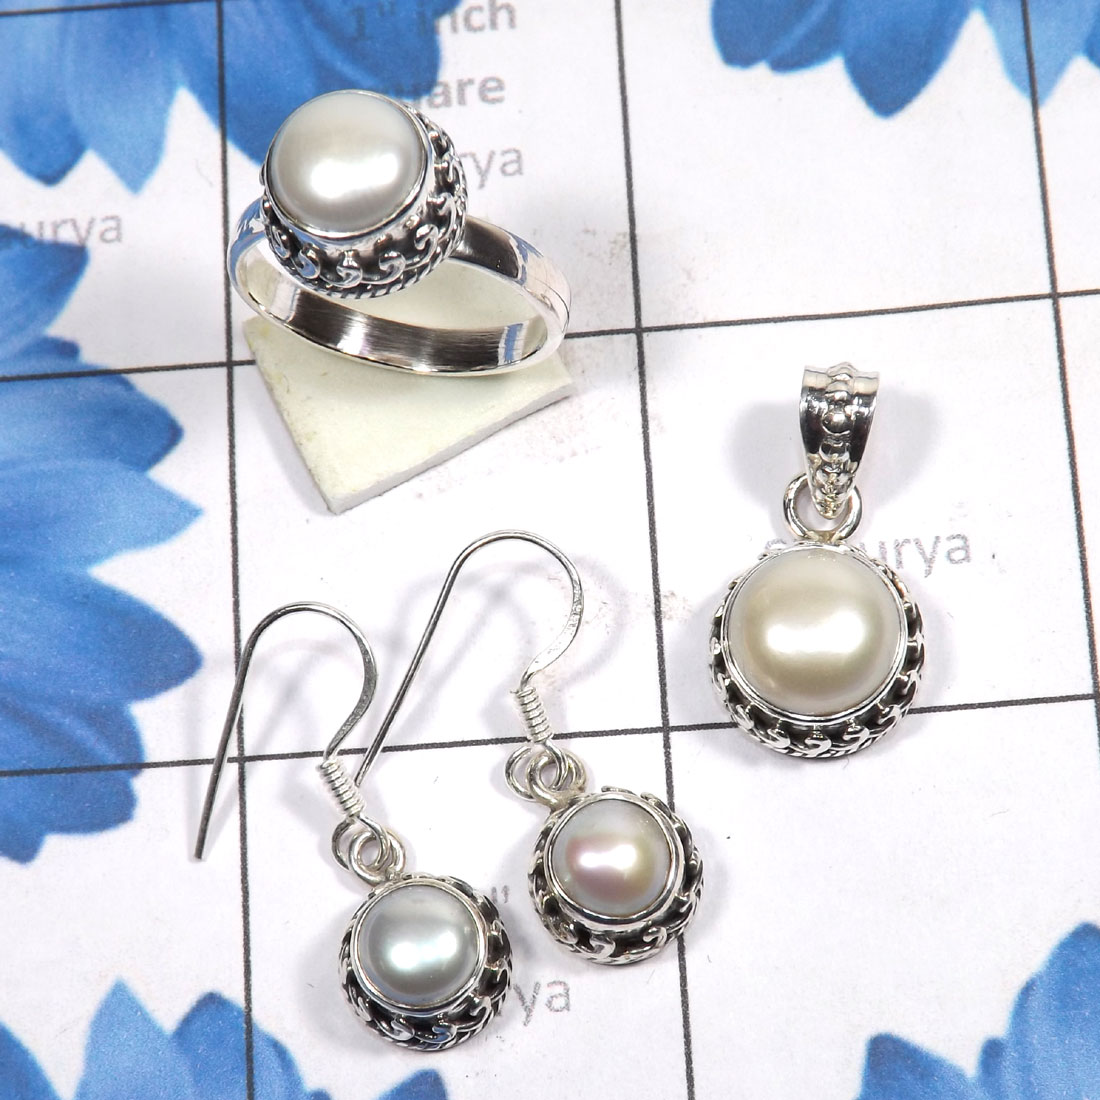 3 Pcs Pearl Set A - PPS995-Genuine Pearl 3 Pcs Earring, Pendant, Ring Set 925 Sterli